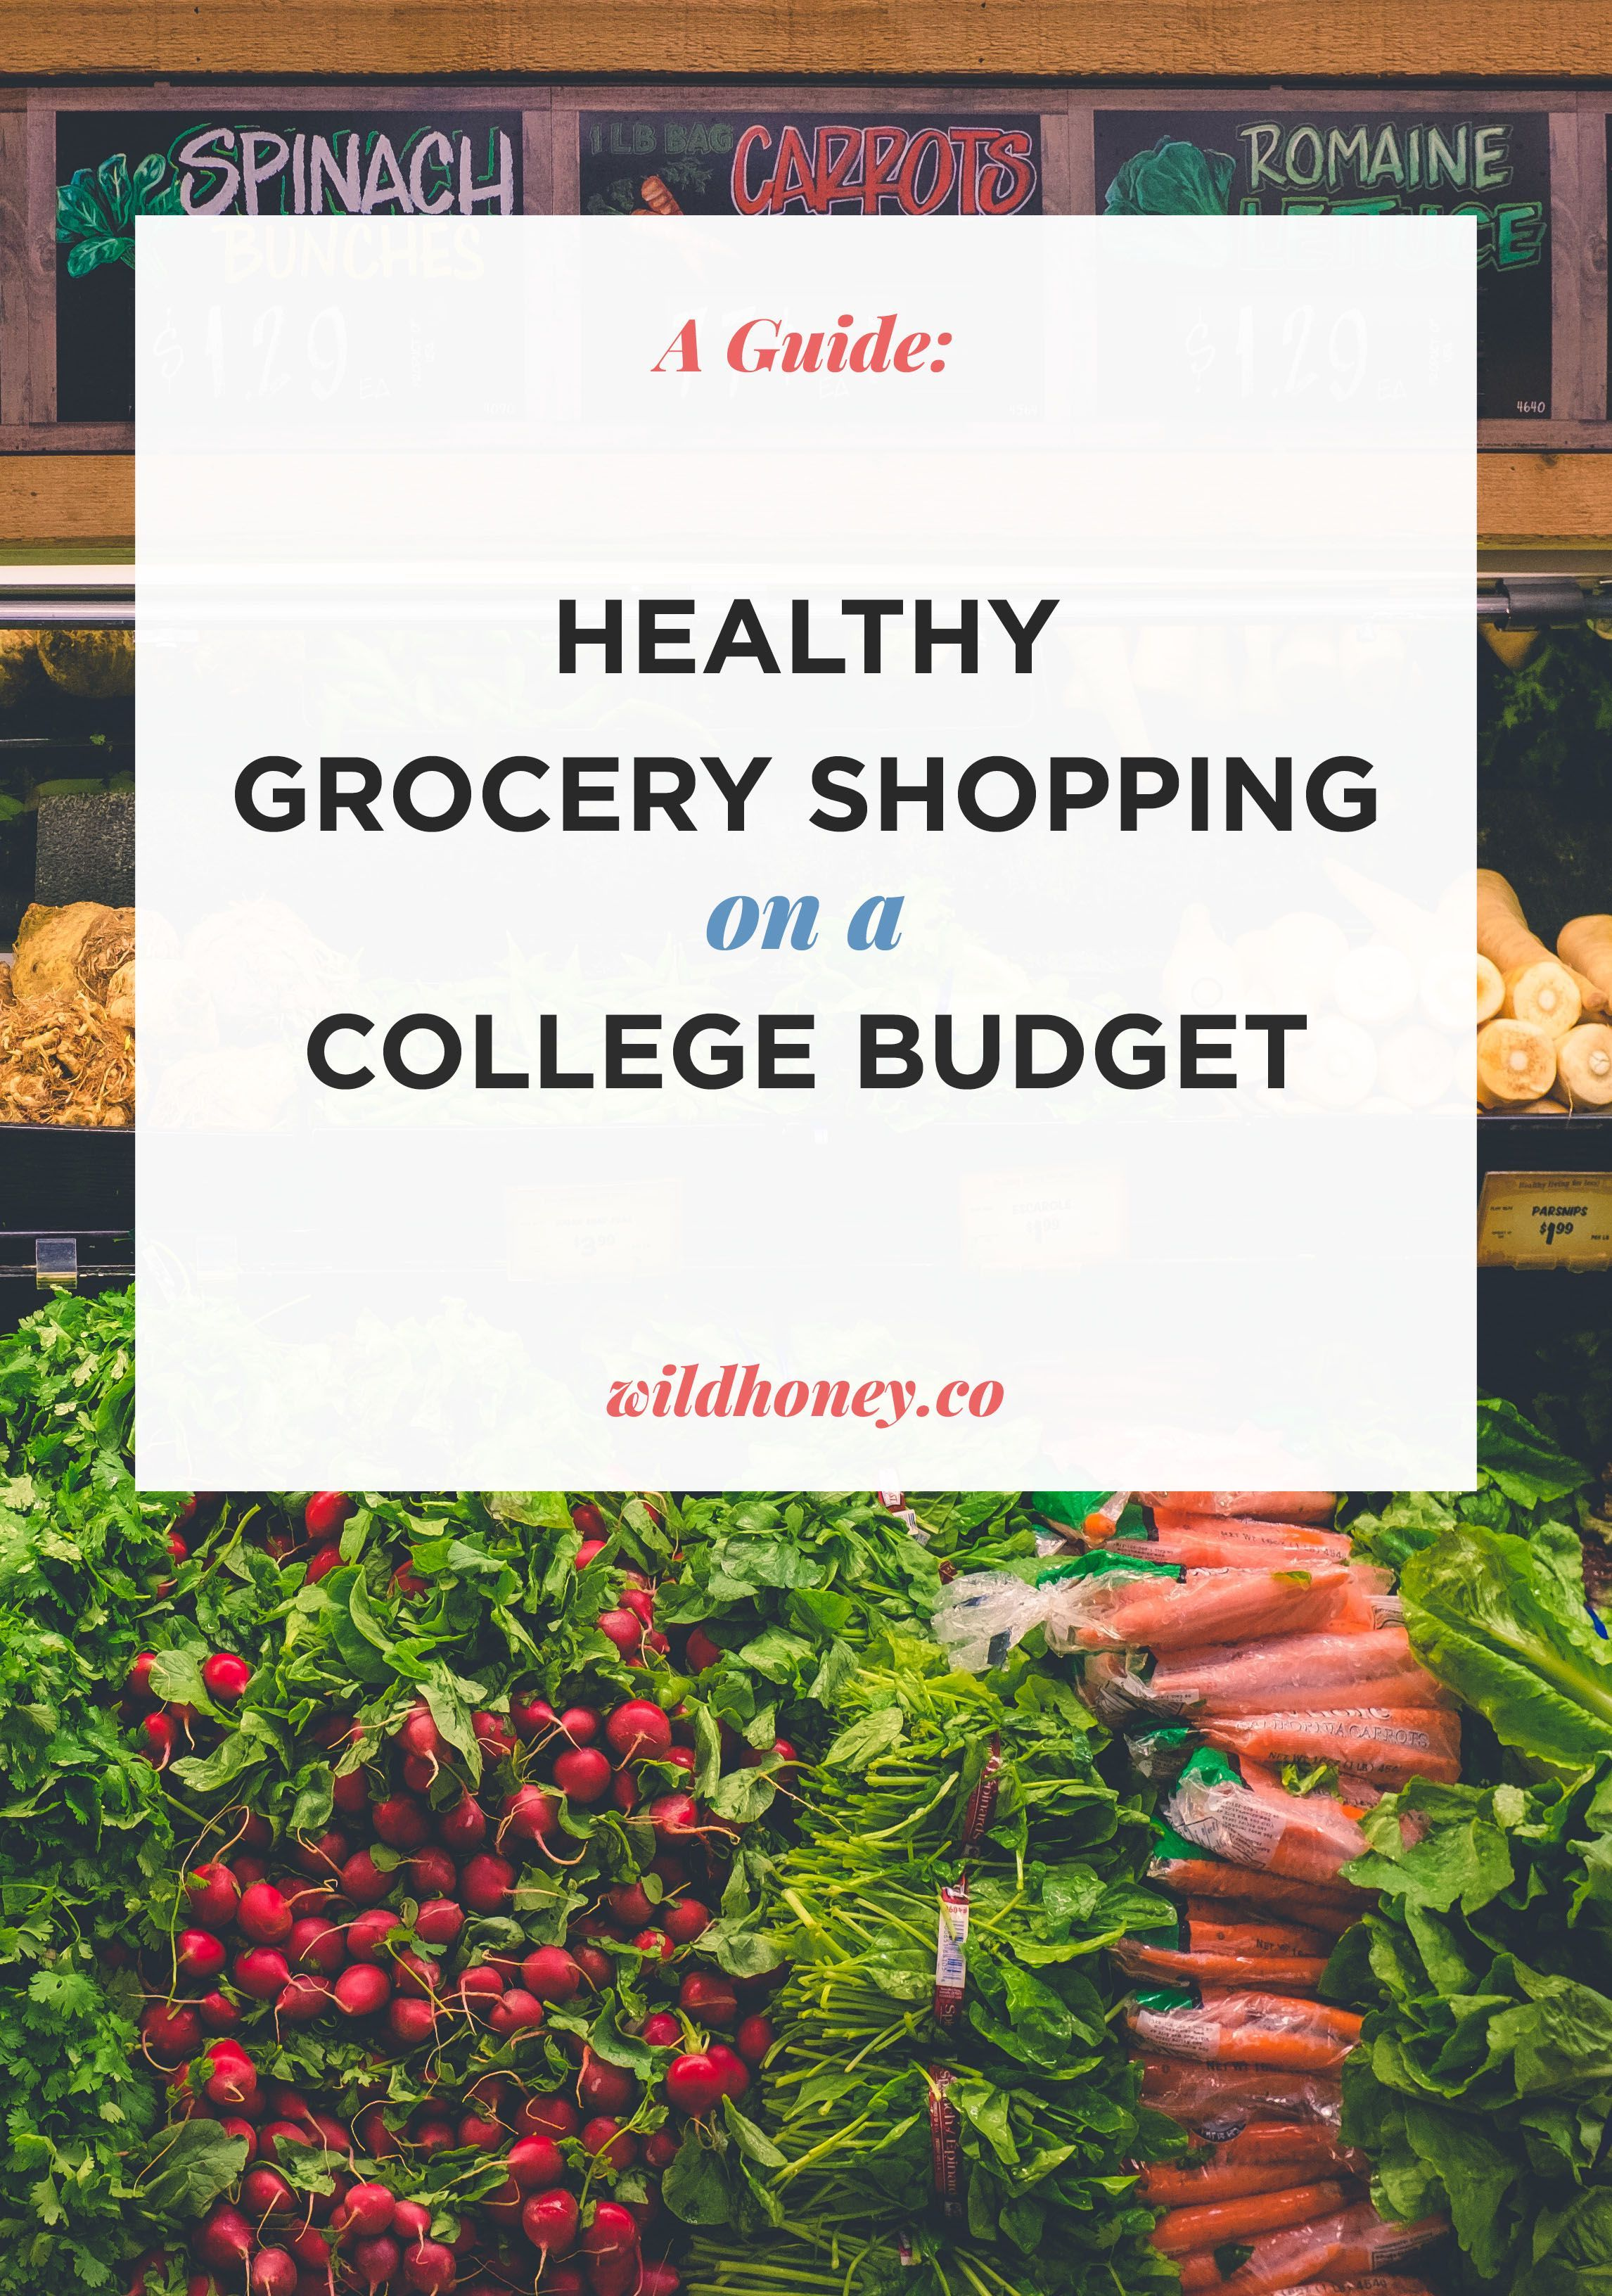 How to grocery shop on a college budget – wild honey images